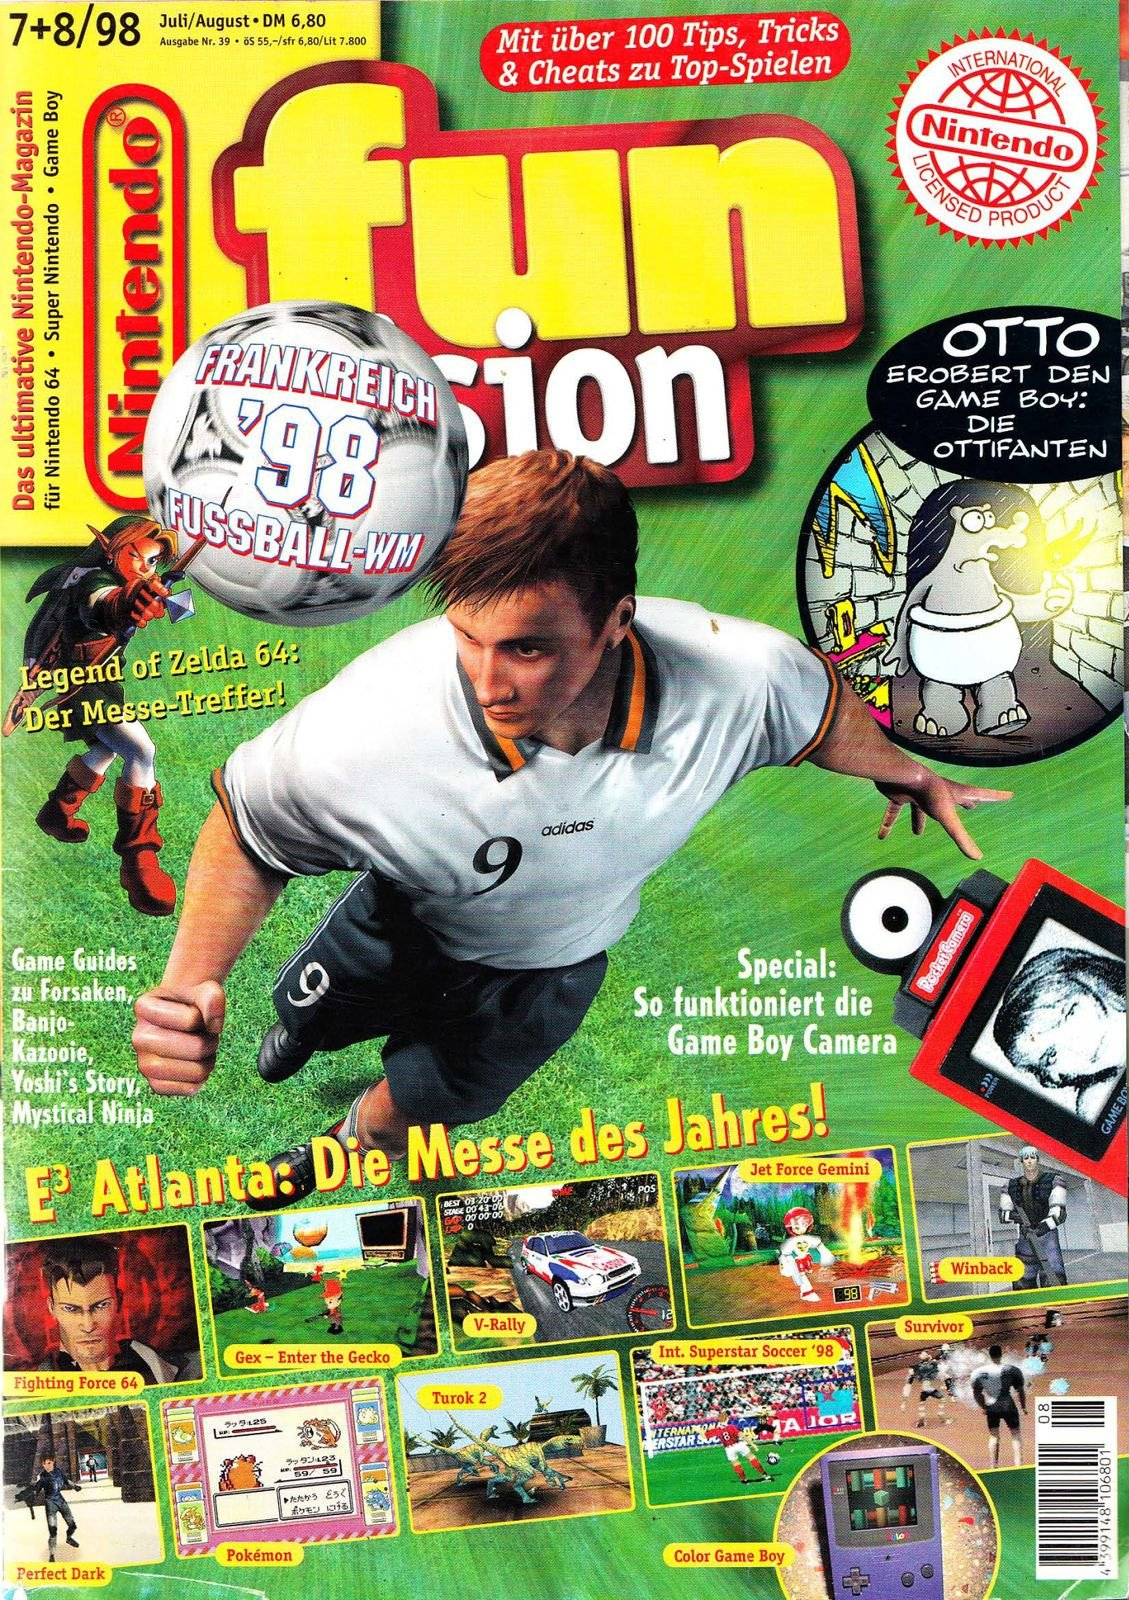 Nintendo Fun Vision Issue 52 (July / August 1998)